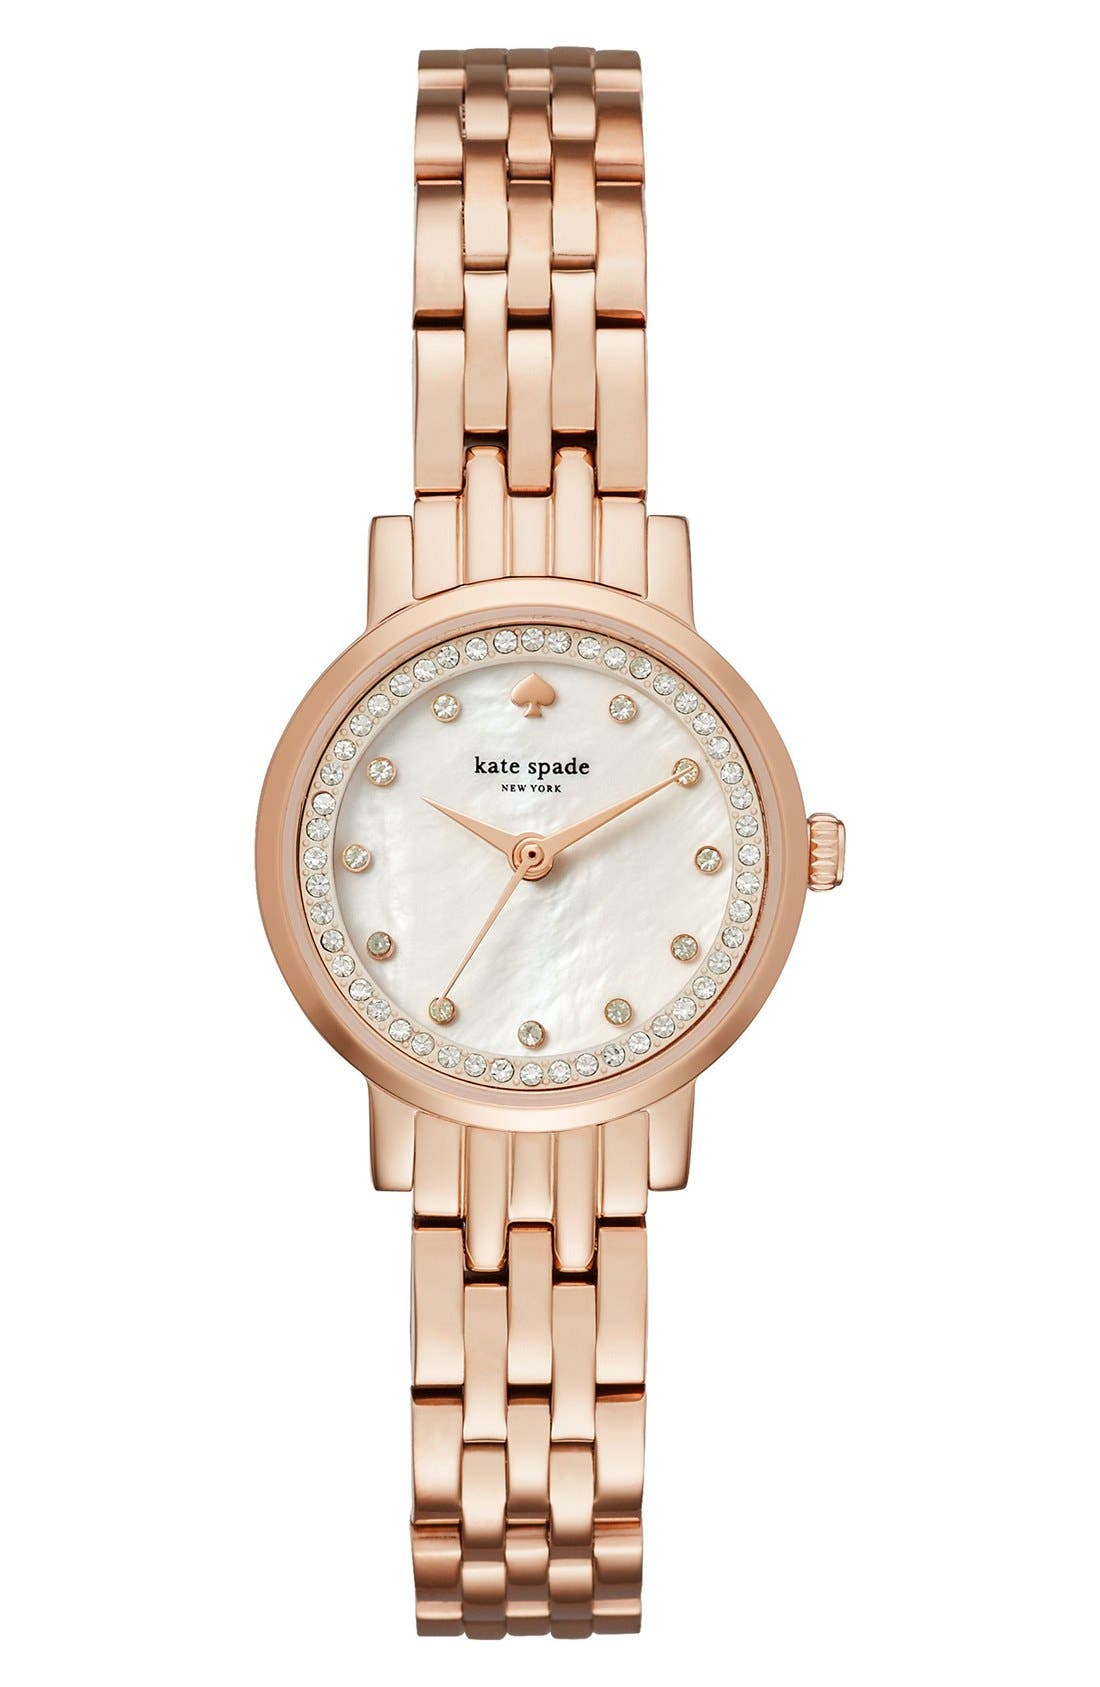 KATE SPADE NEW YORK mini monterey glitz bracelet watch, 24mm